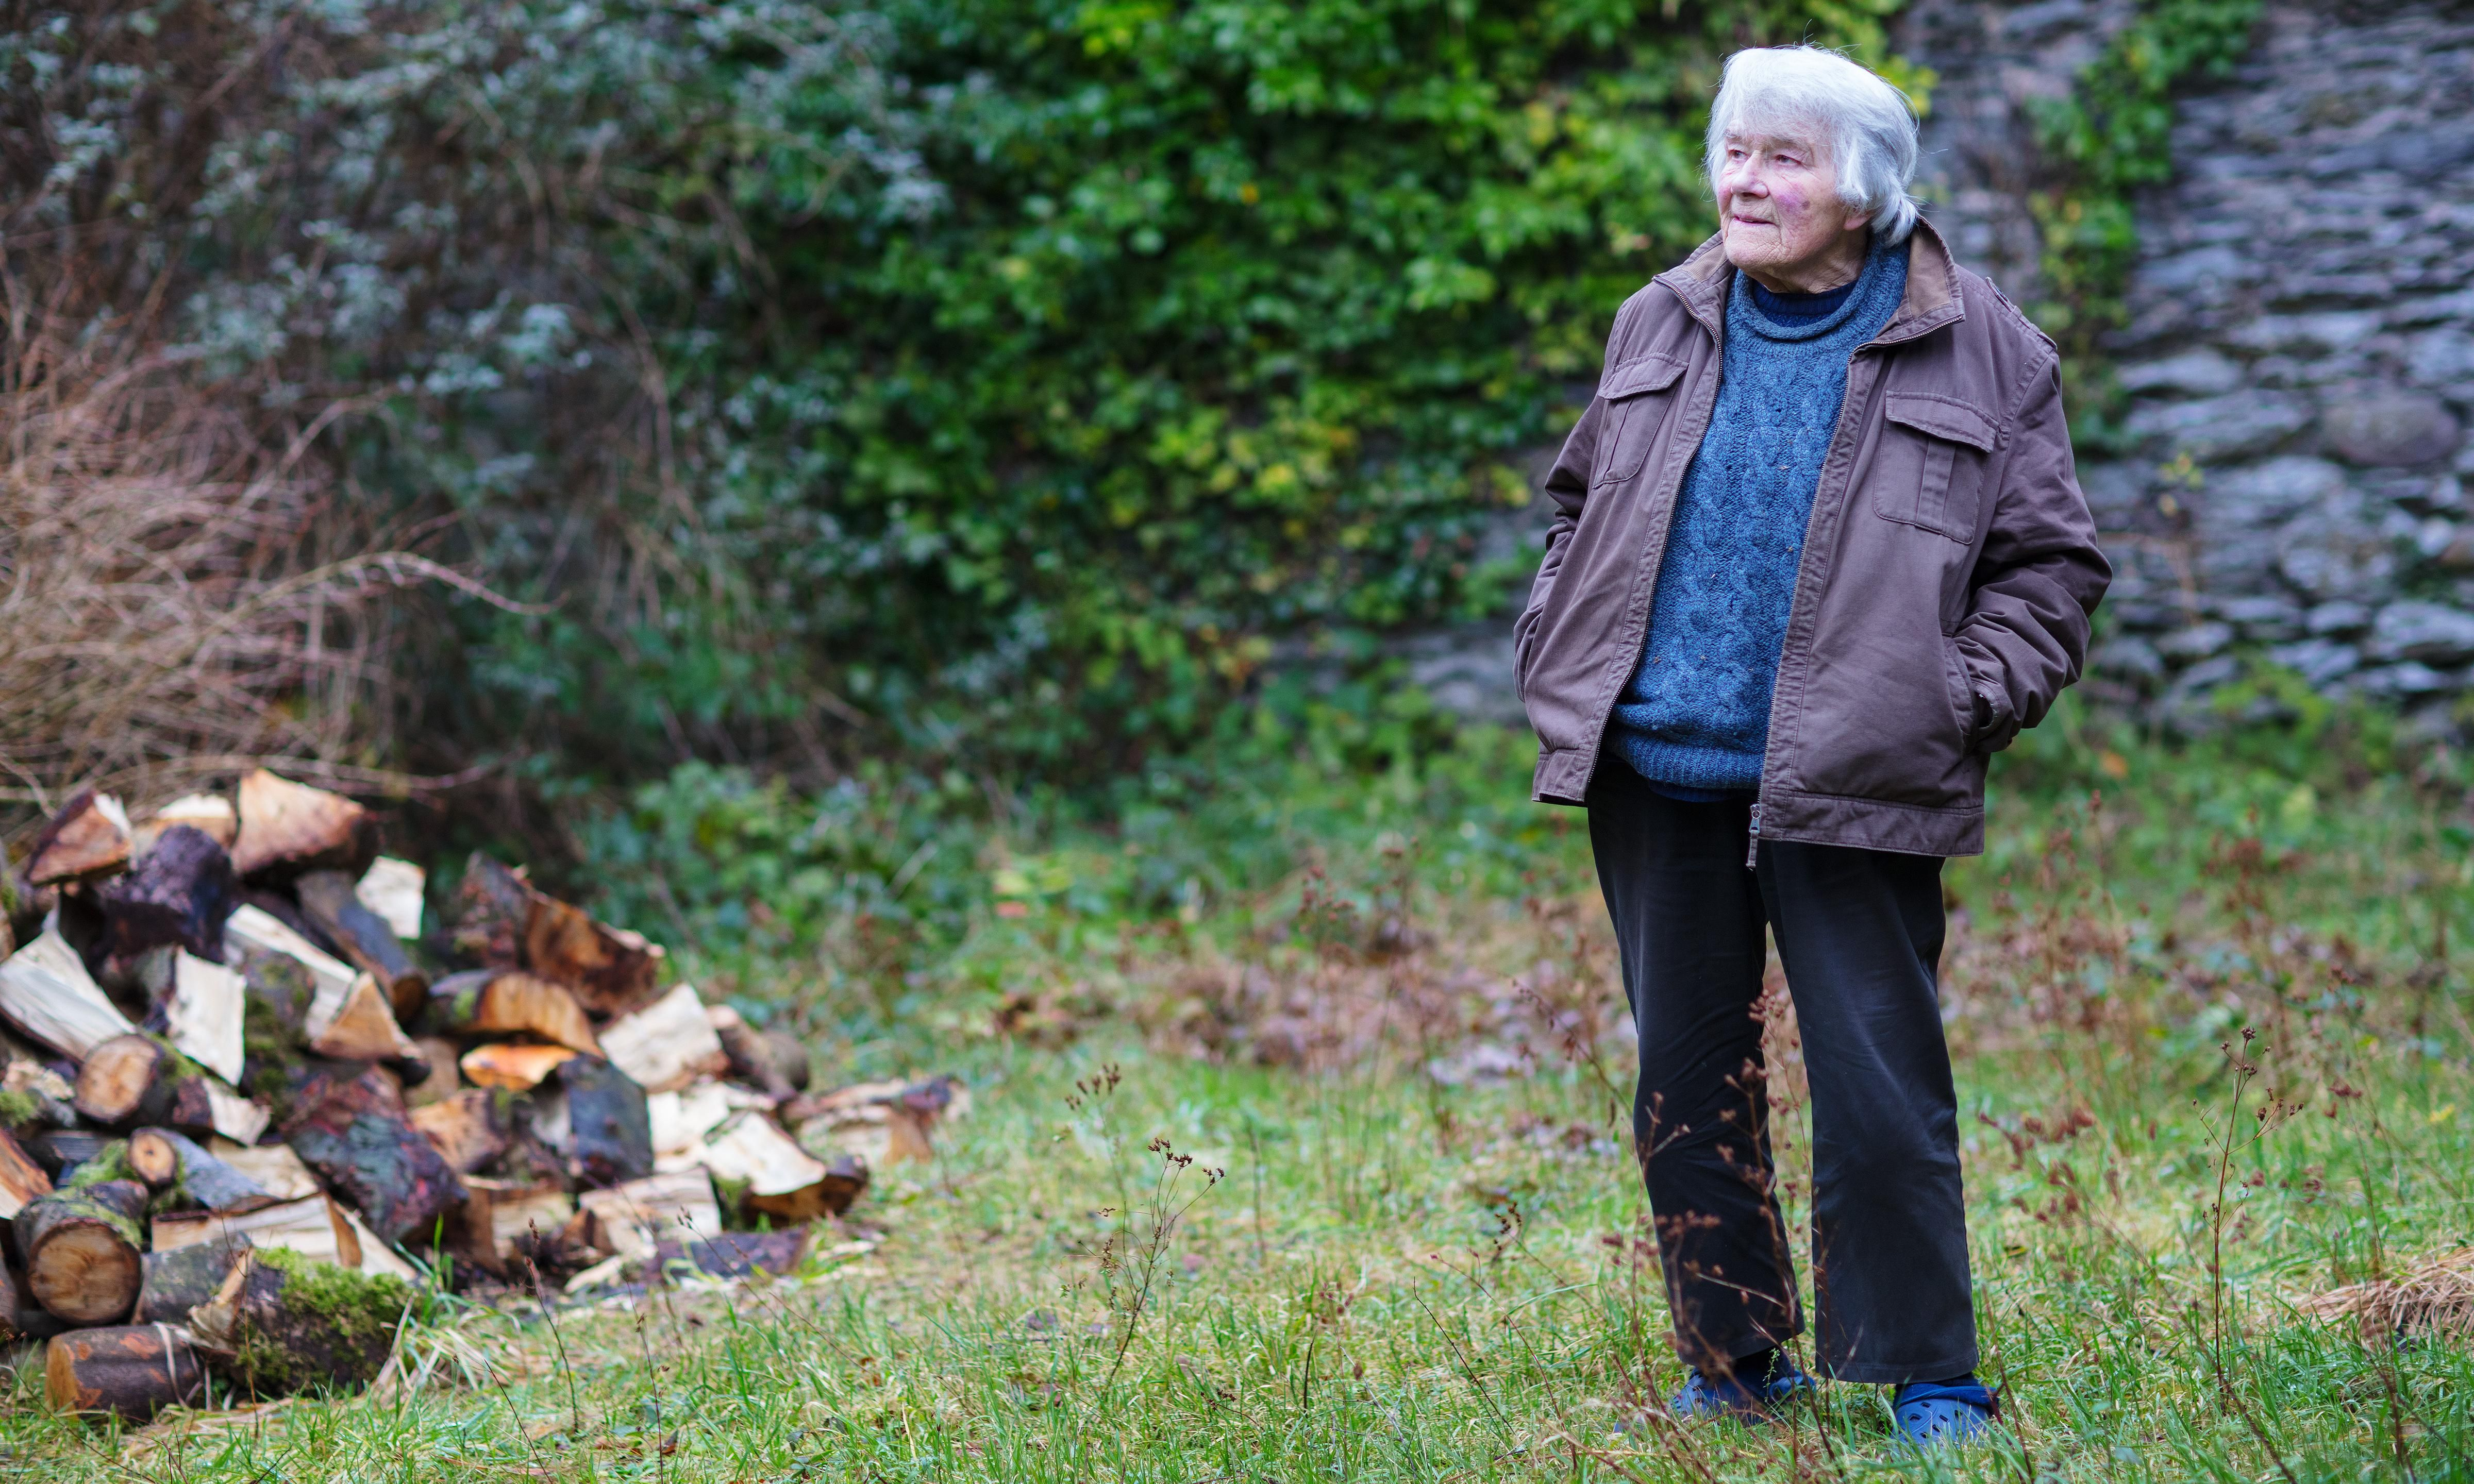 'You could say I'm reluctantly retired from writing books': travel writer Dervla Murphy